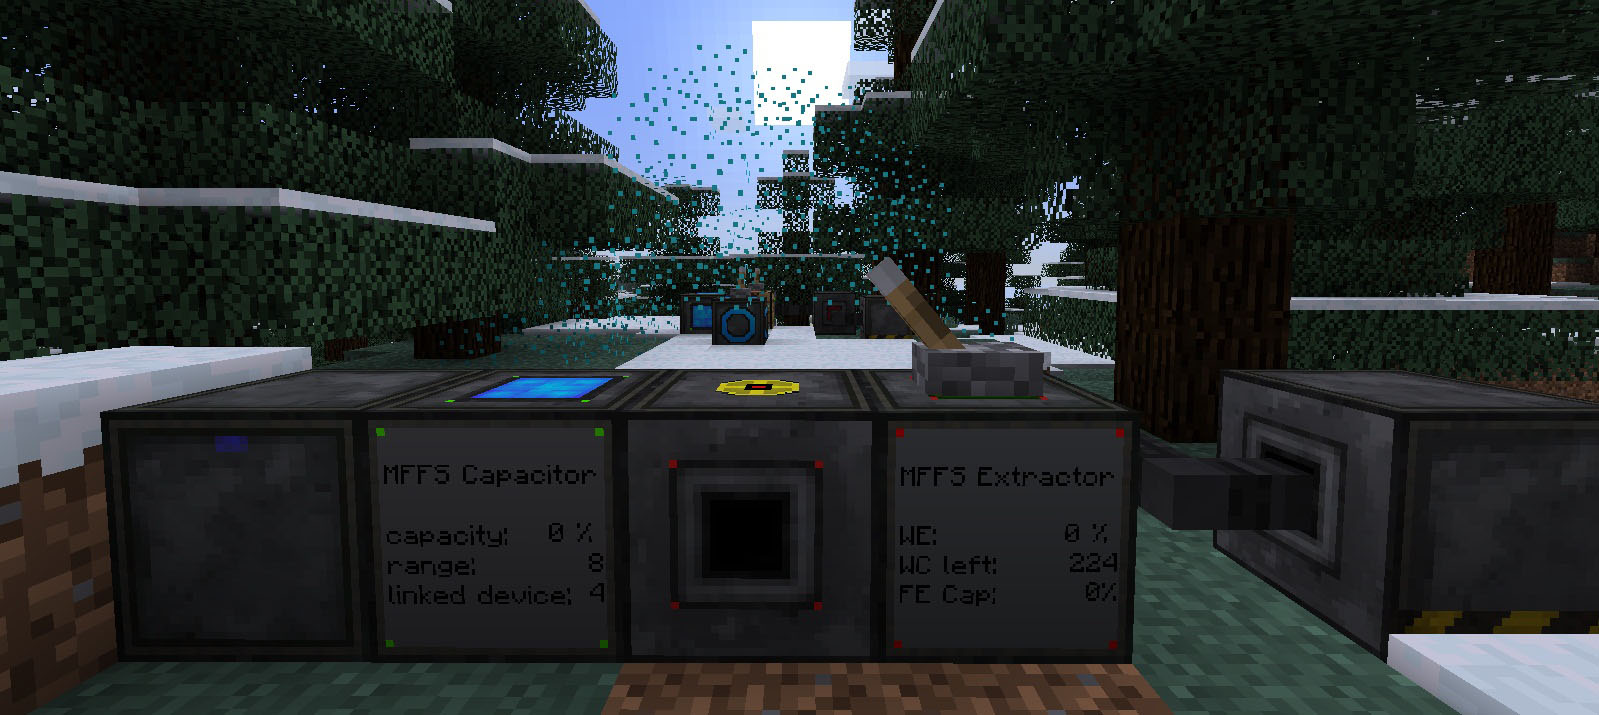 http://minecraft-forum.net/wp-content/uploads/2013/03/c462f__Modular-Force-Field-System-Mod-1.jpg